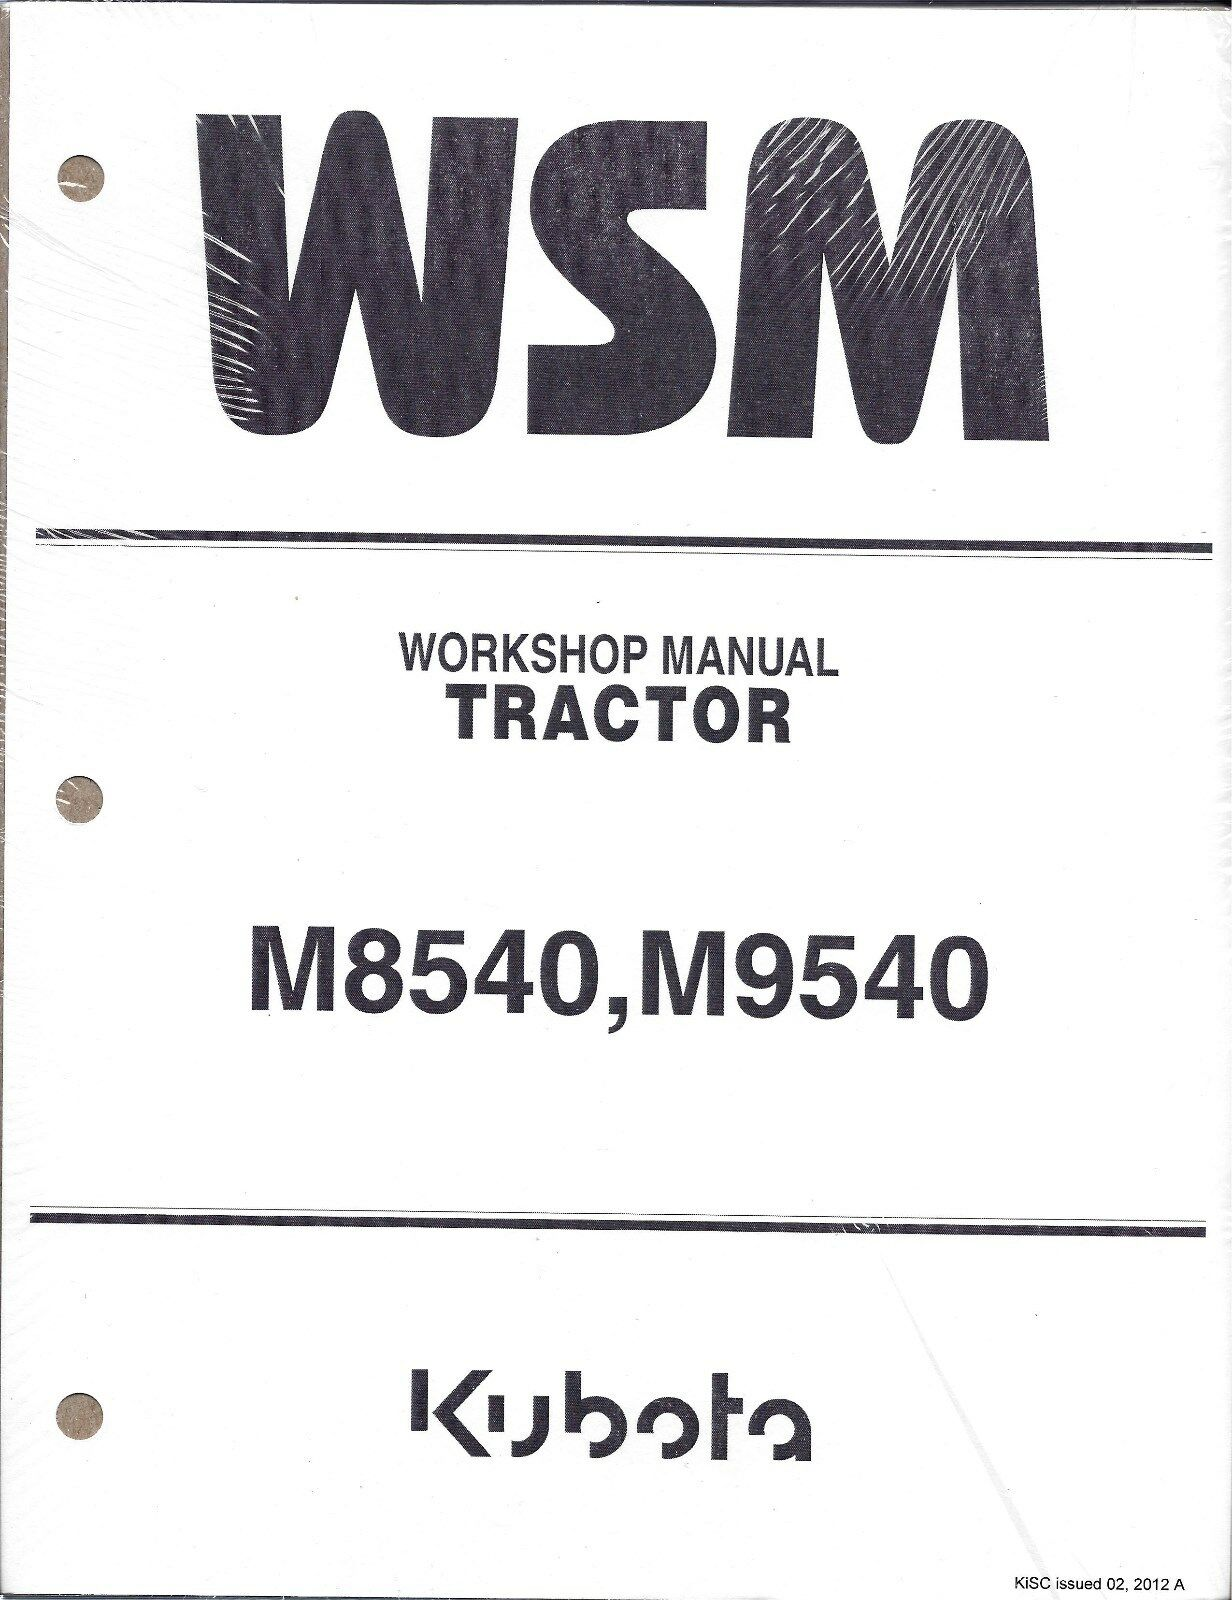 kubota m8540 m9540 tractor workshop service repair manual ebay rh ebay com kubota m8540 repair manual kubota m8540 owners manual